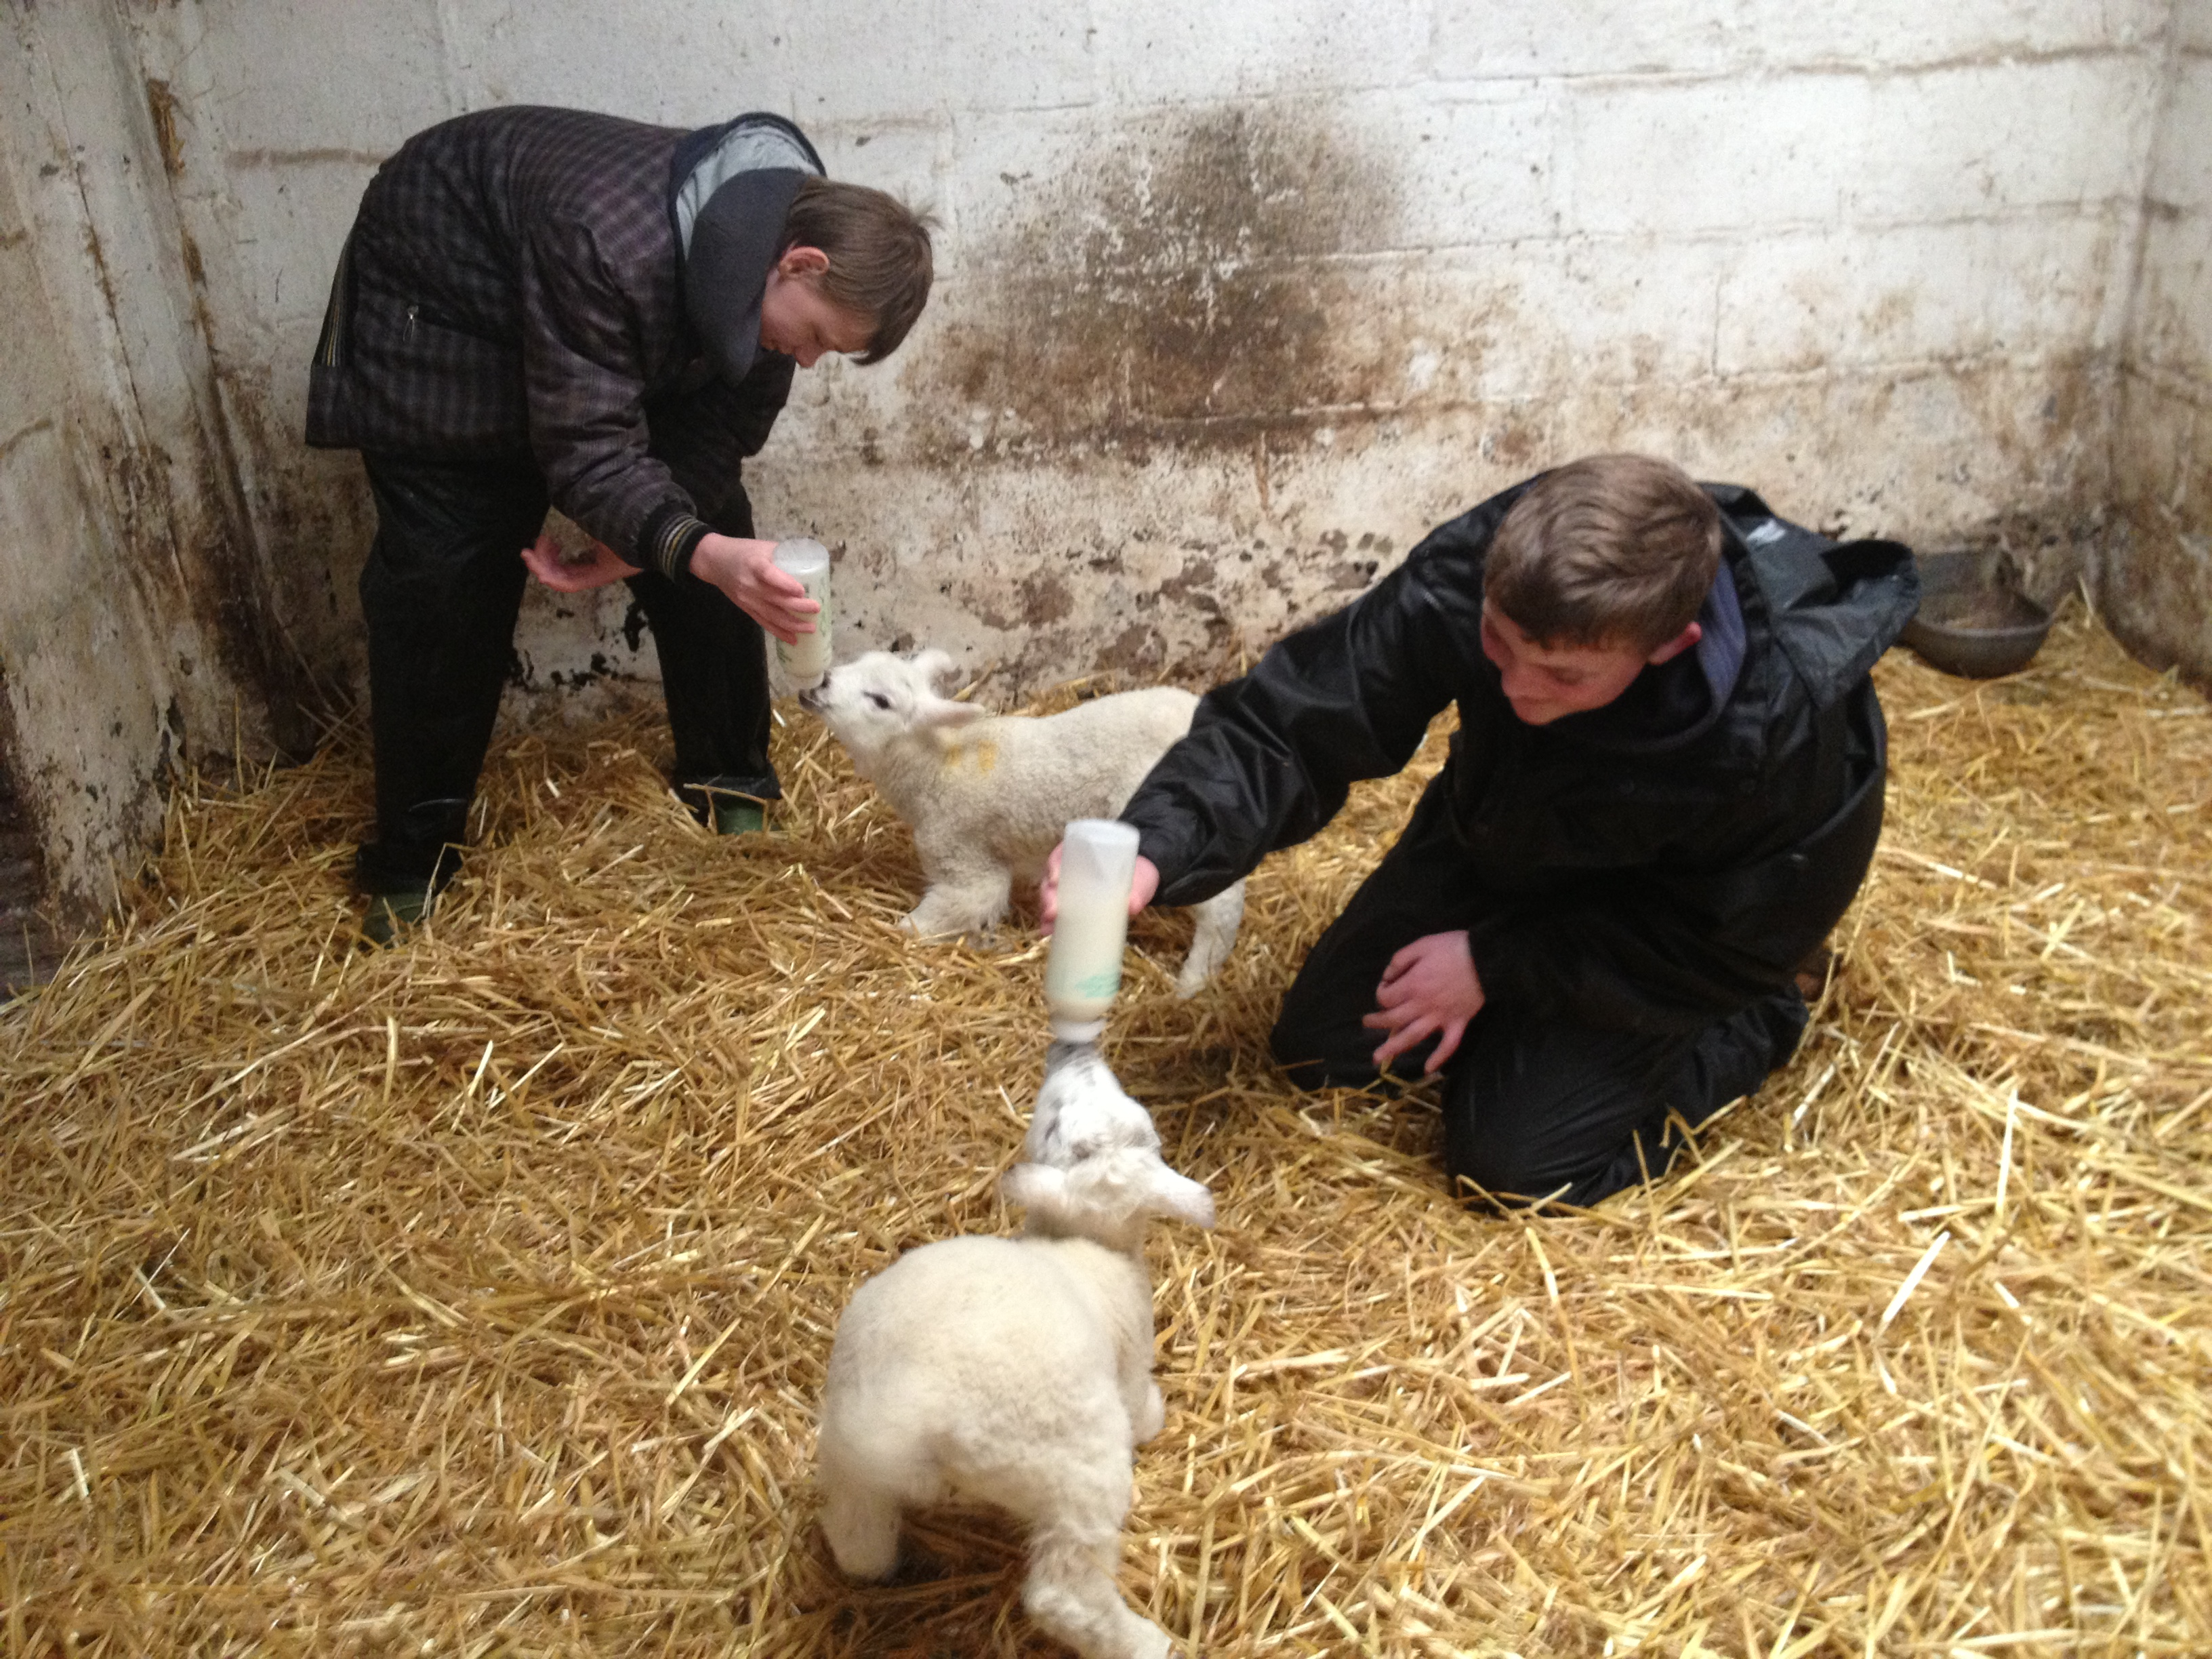 feeding lambs at Cronkshaw Fold Farm